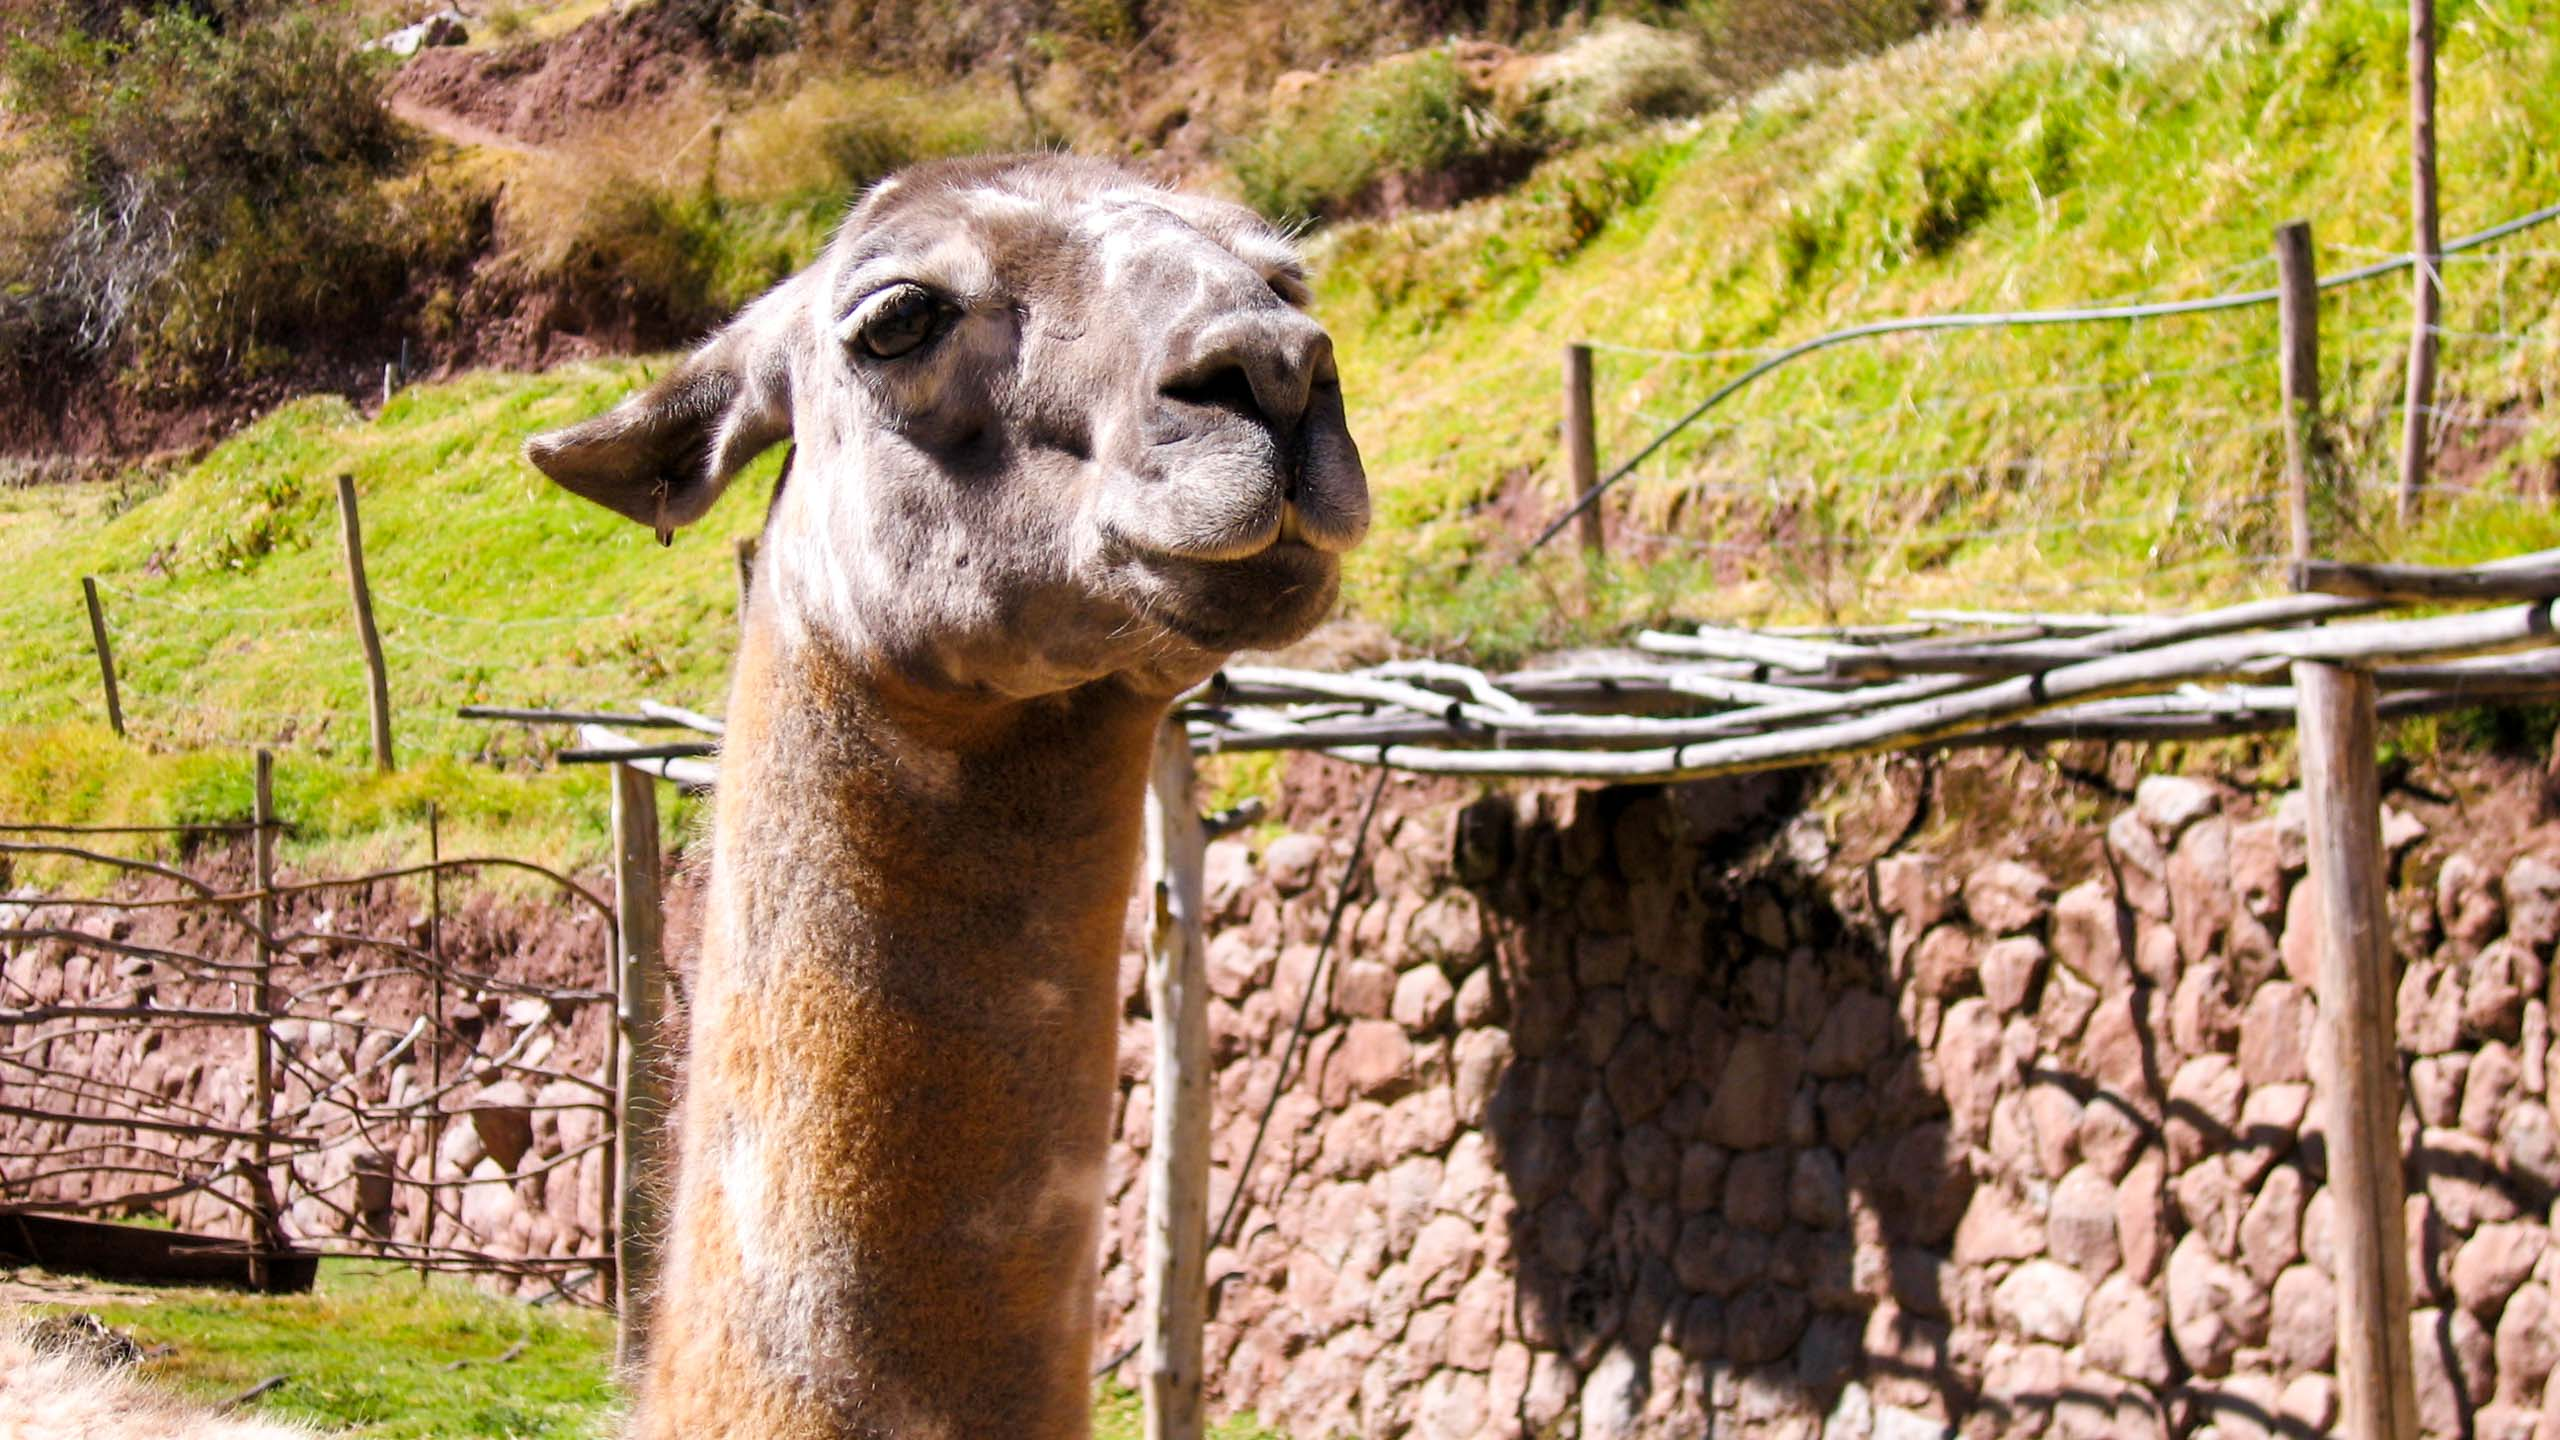 Close up of Peru alpaca